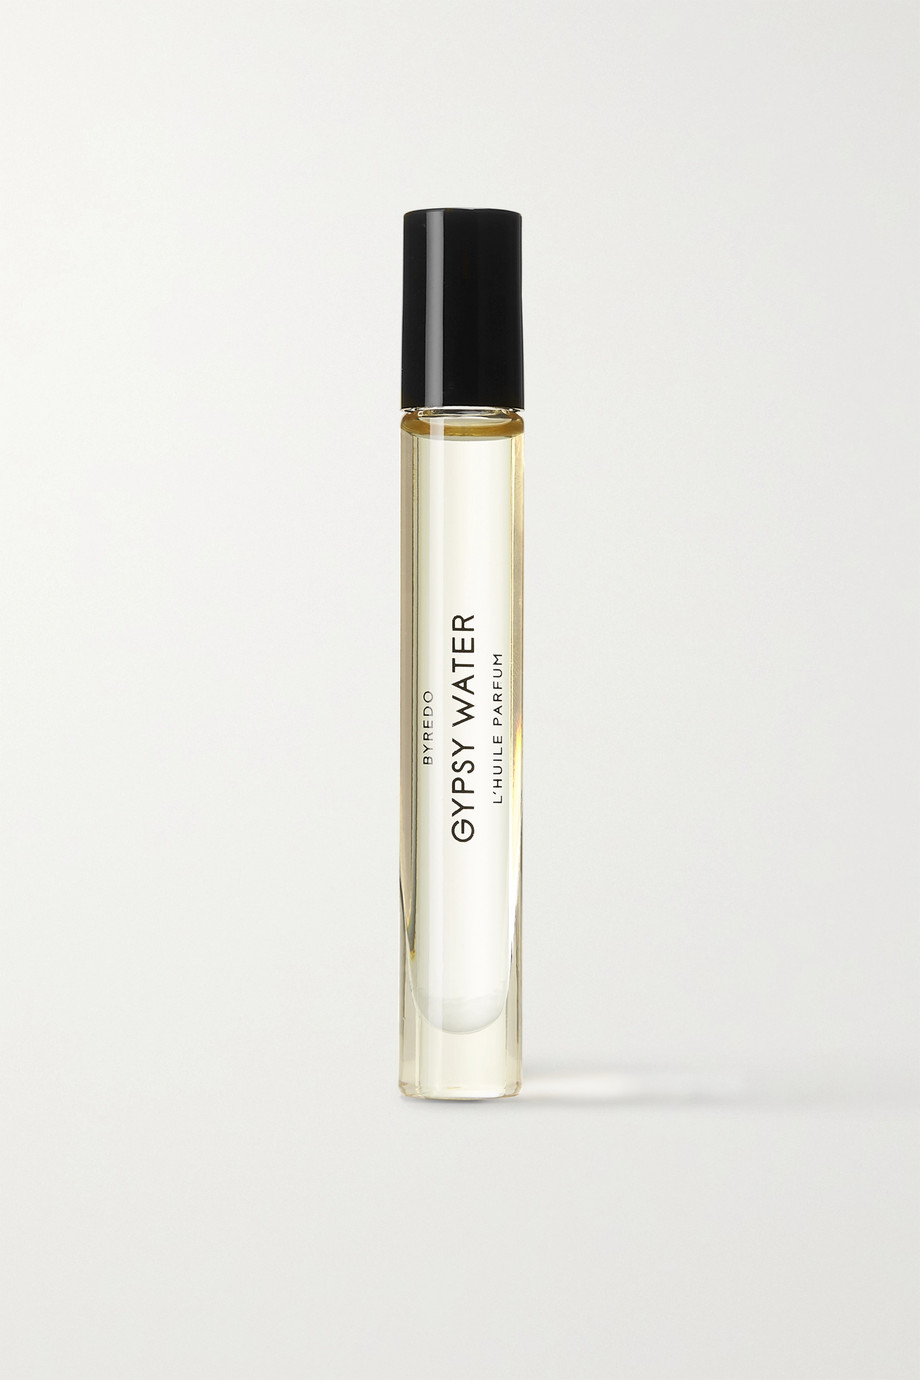 Byredo Perfumed Oil Roll-On - Gypsy Water, 7.5ml